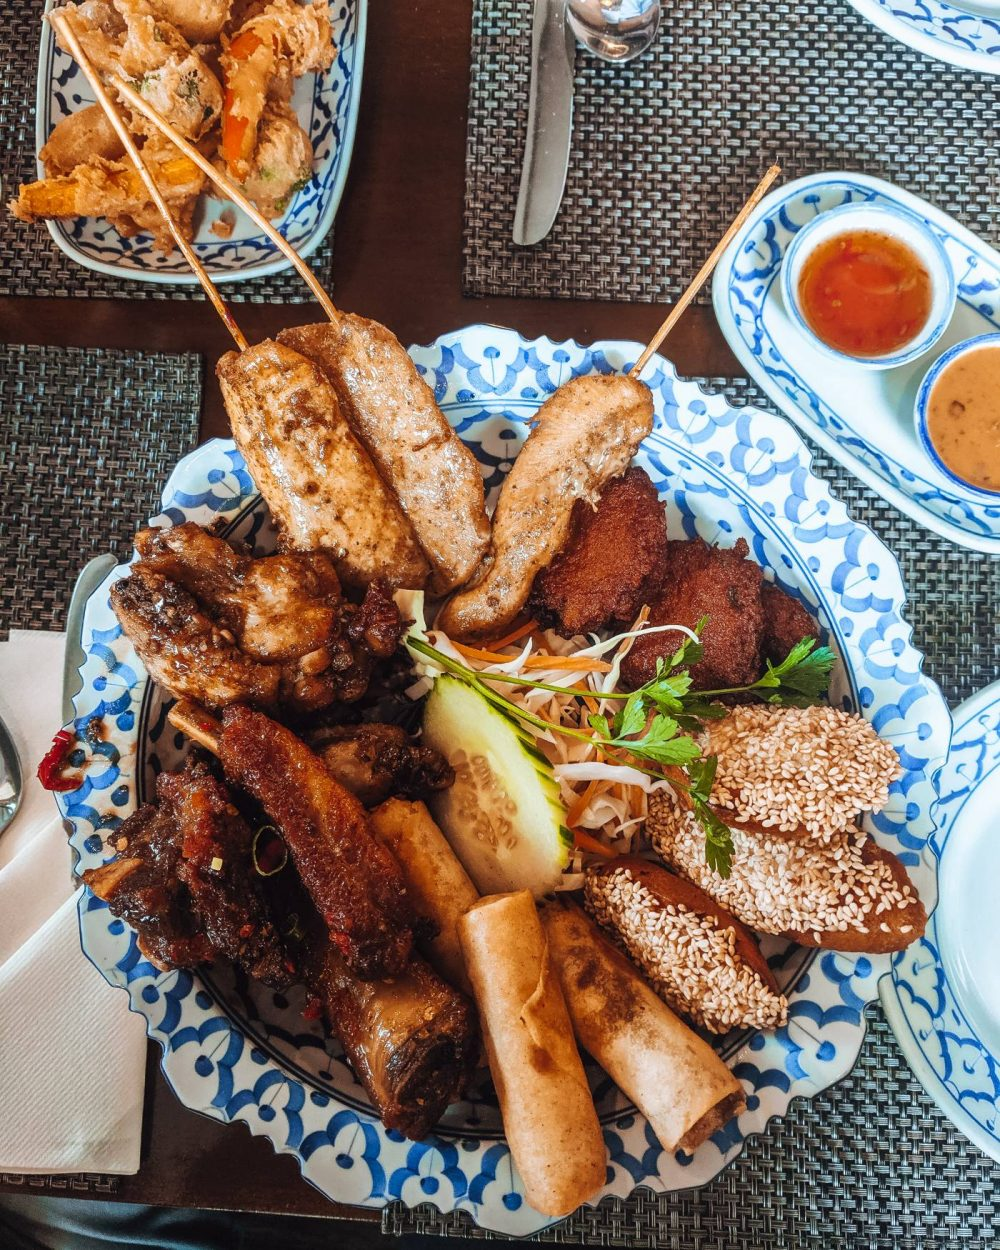 Pin Petch Thai Restaurant's sharing platter - Eat Out to Help out in Milton Keynes.